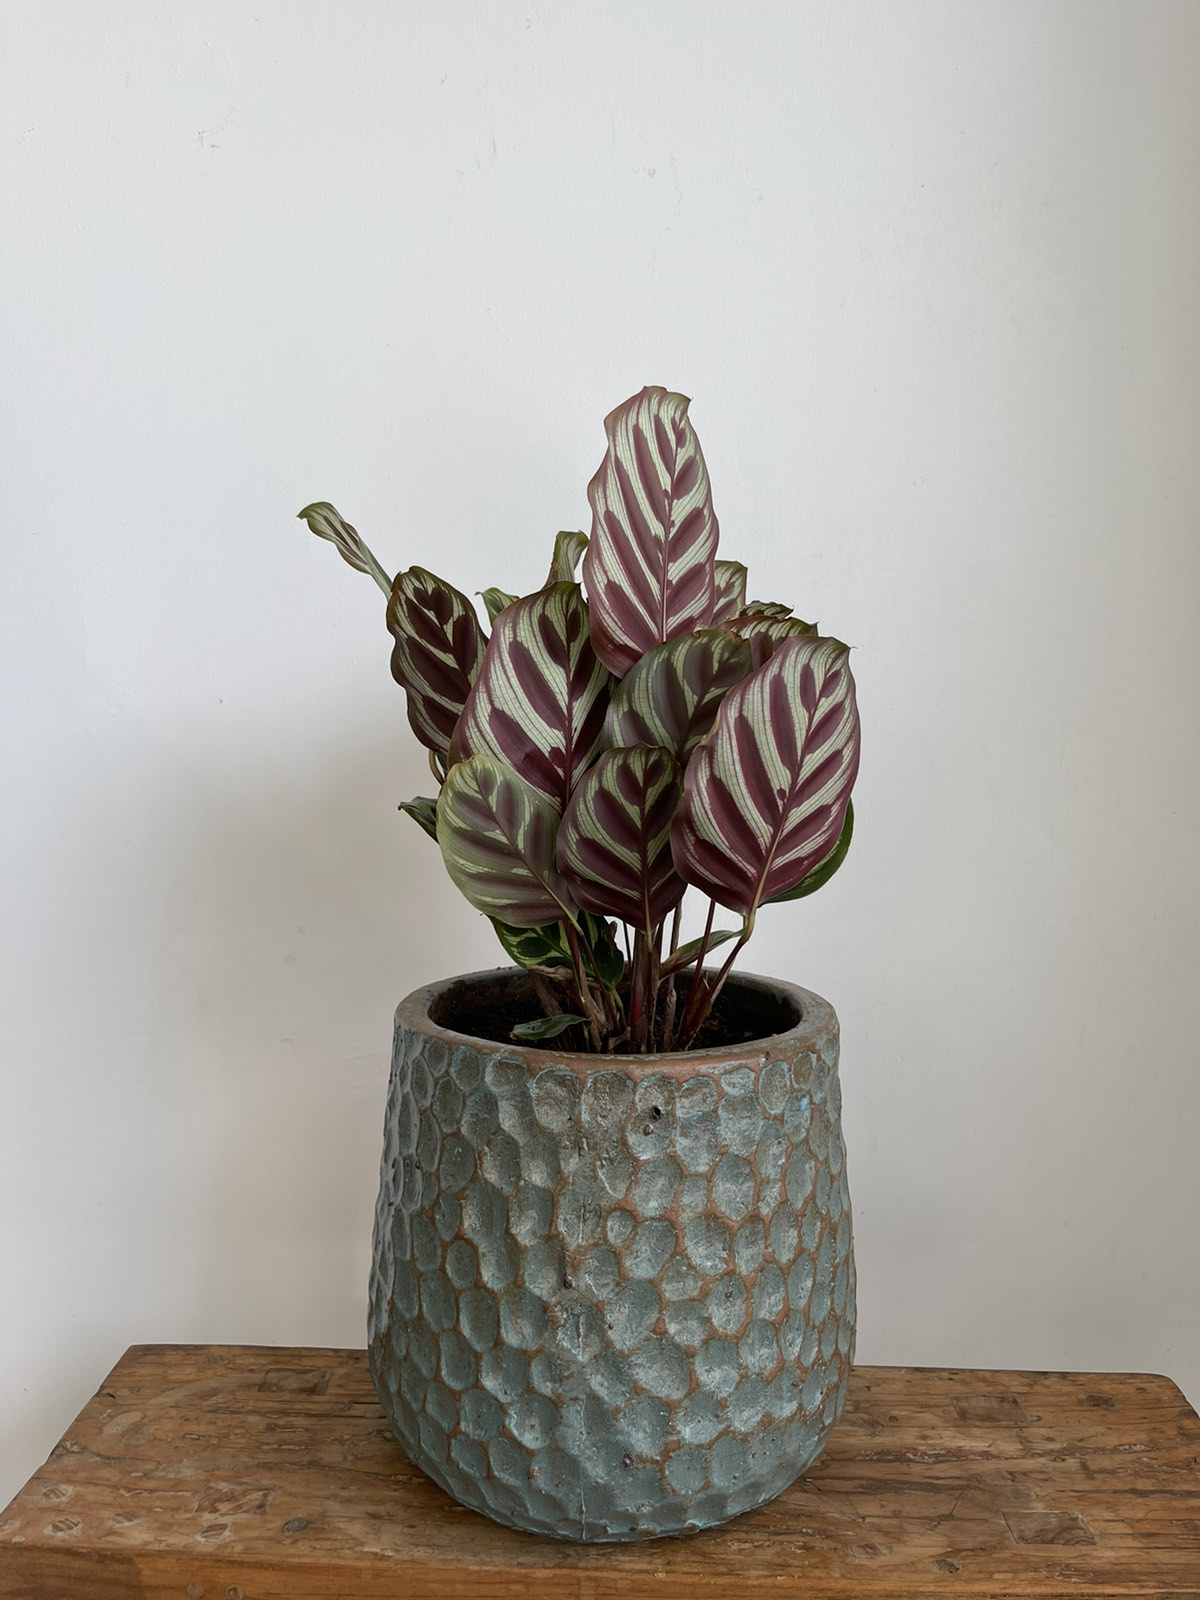 Calathea in ceramic pot